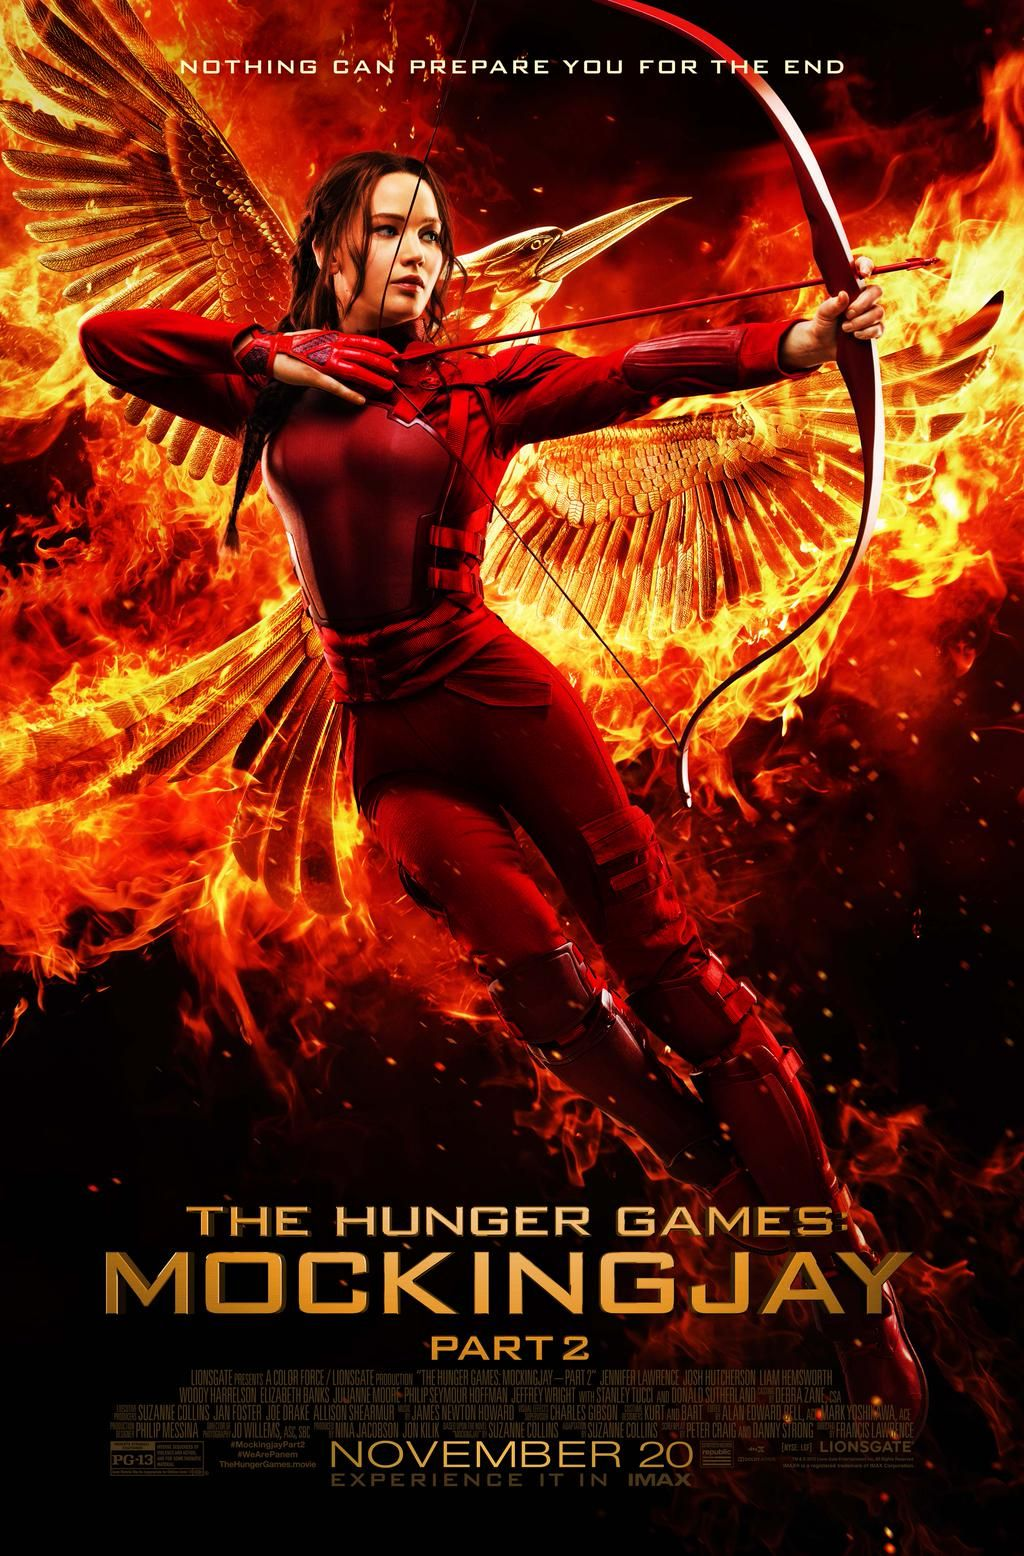 Mockingjay Part 2 On Twitter Hunger Games Movies Hunger Games Mockingjay Mockingjay